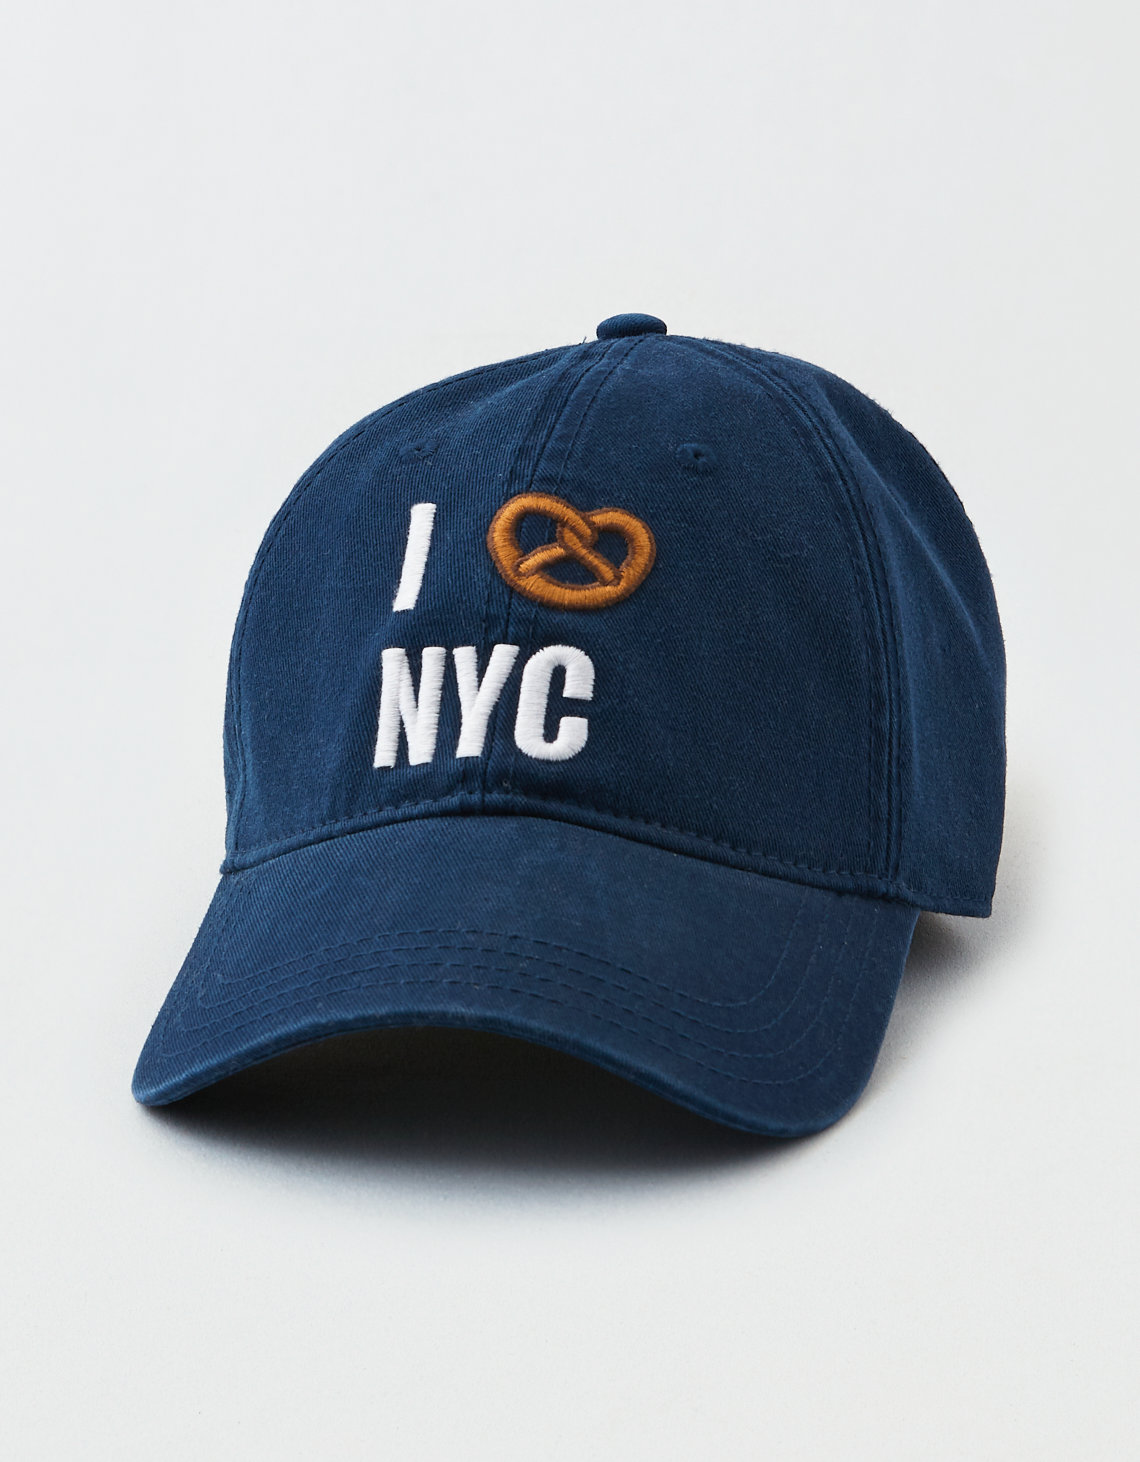 cd7d48d999d AEO NYC Baseball Cap